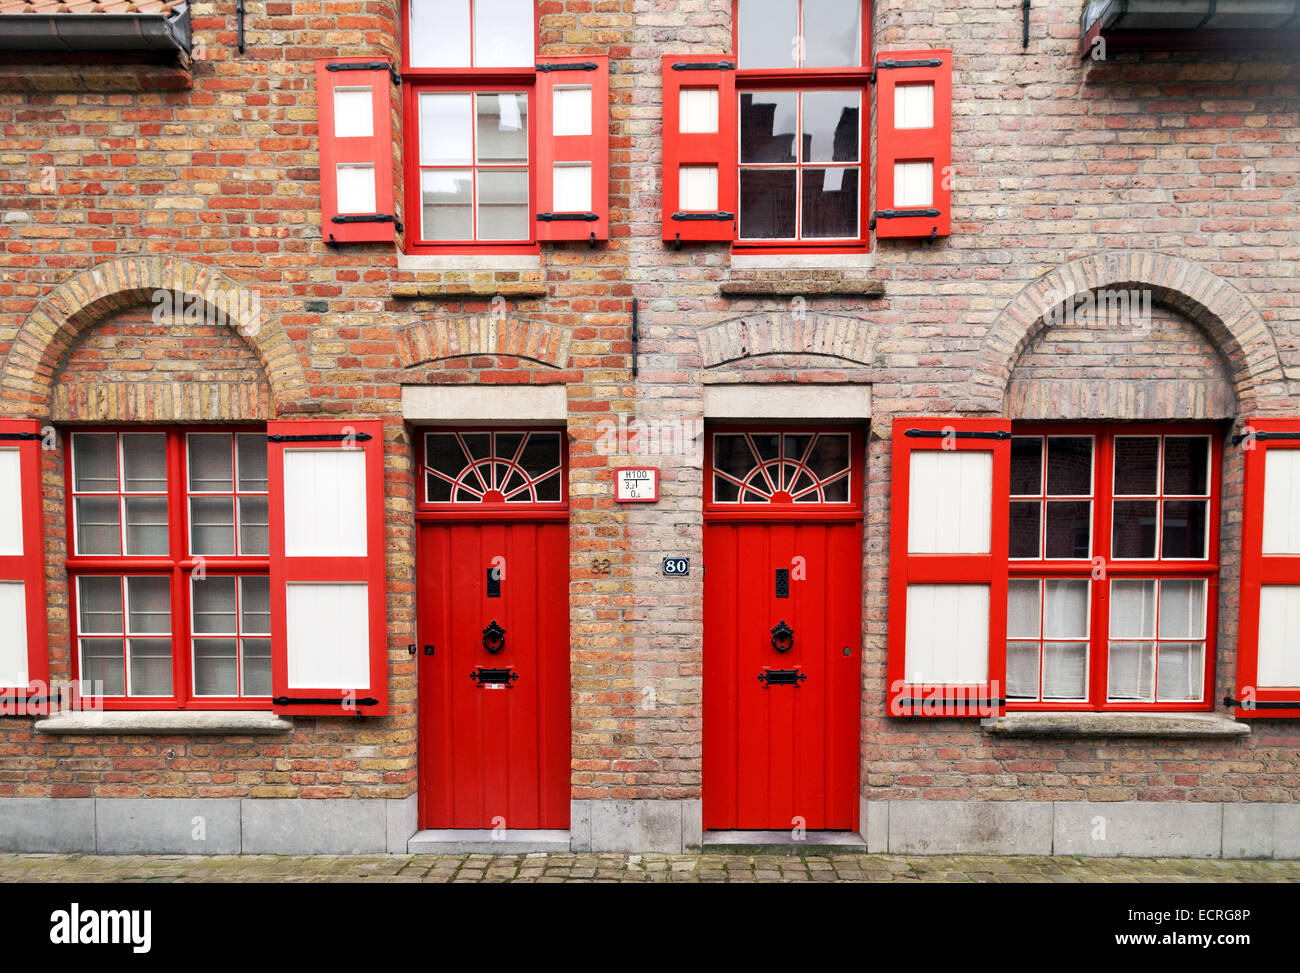 Two red terraced houses in Bruges, Belgium, Europe, concept of symmetry or reflection - Stock Image